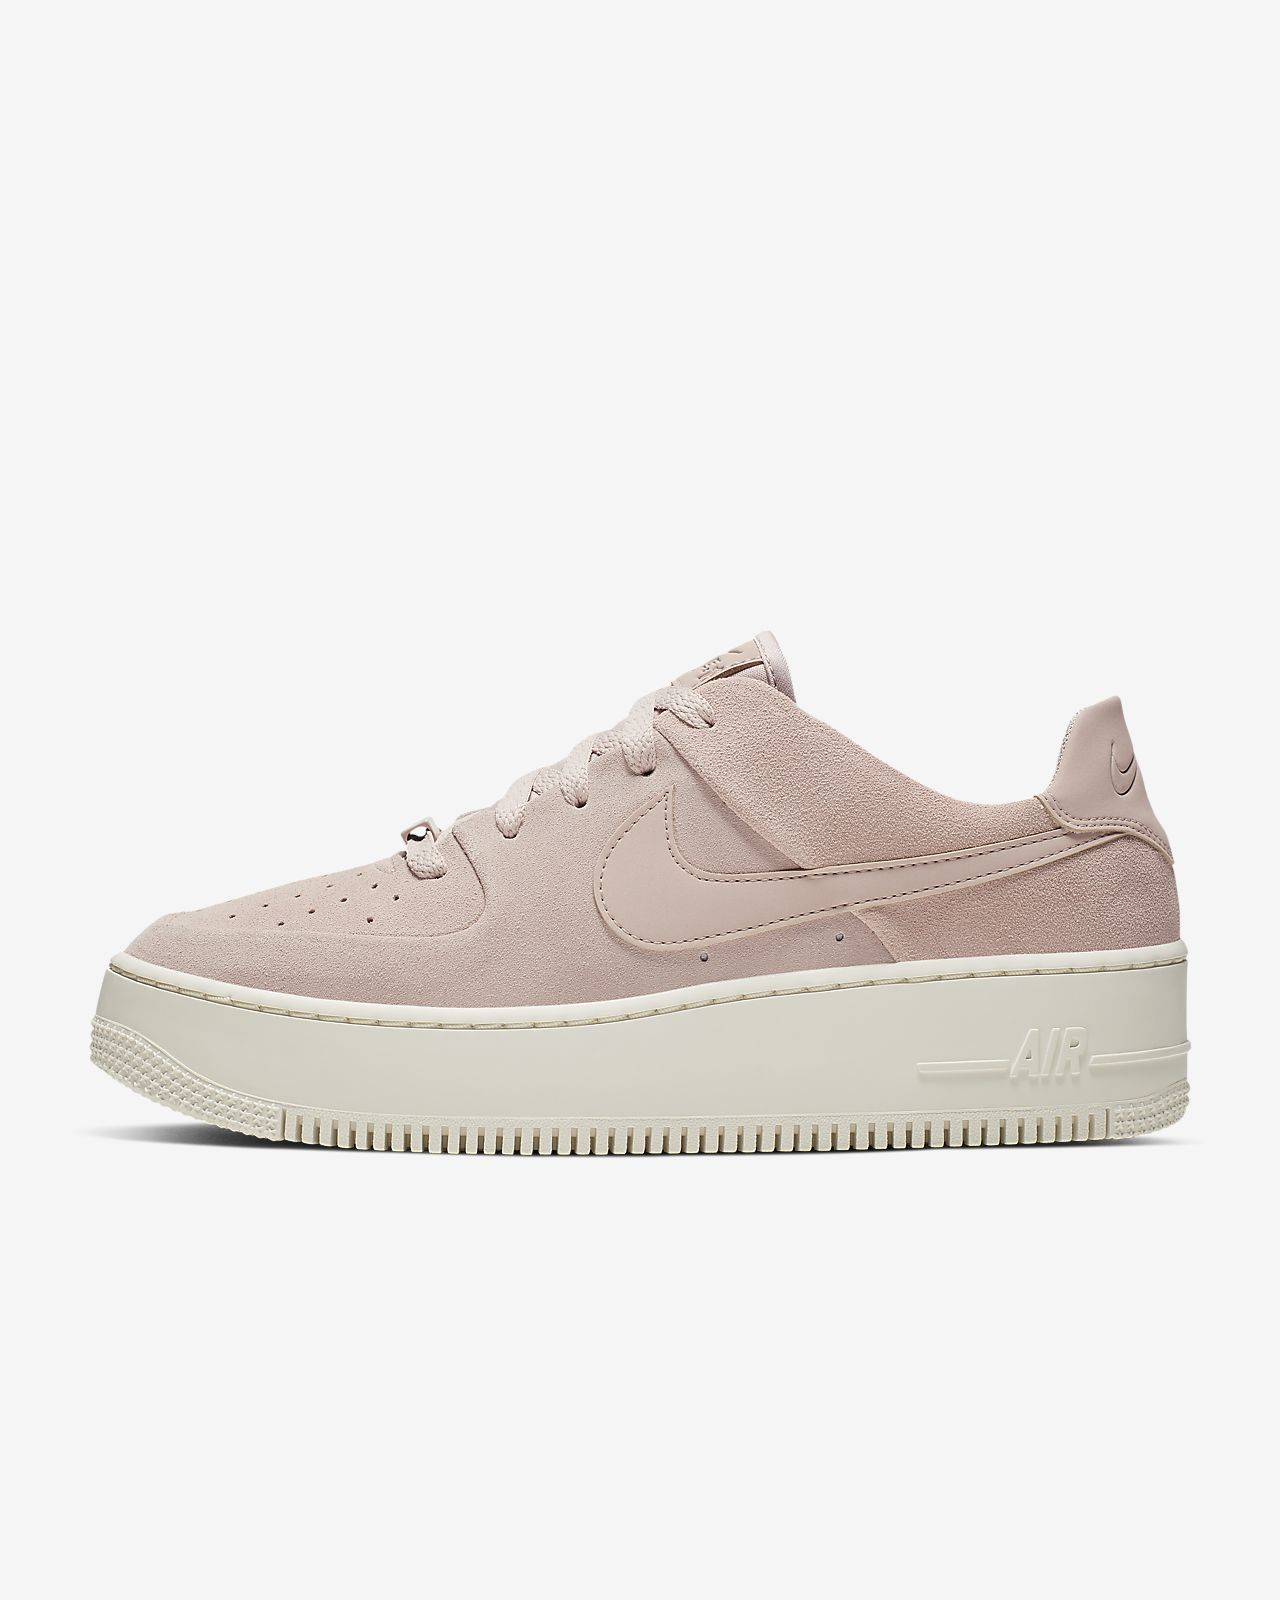 Nike Air Force 1 '07 Gr.38 Sneaker Schuhe Fashion beige